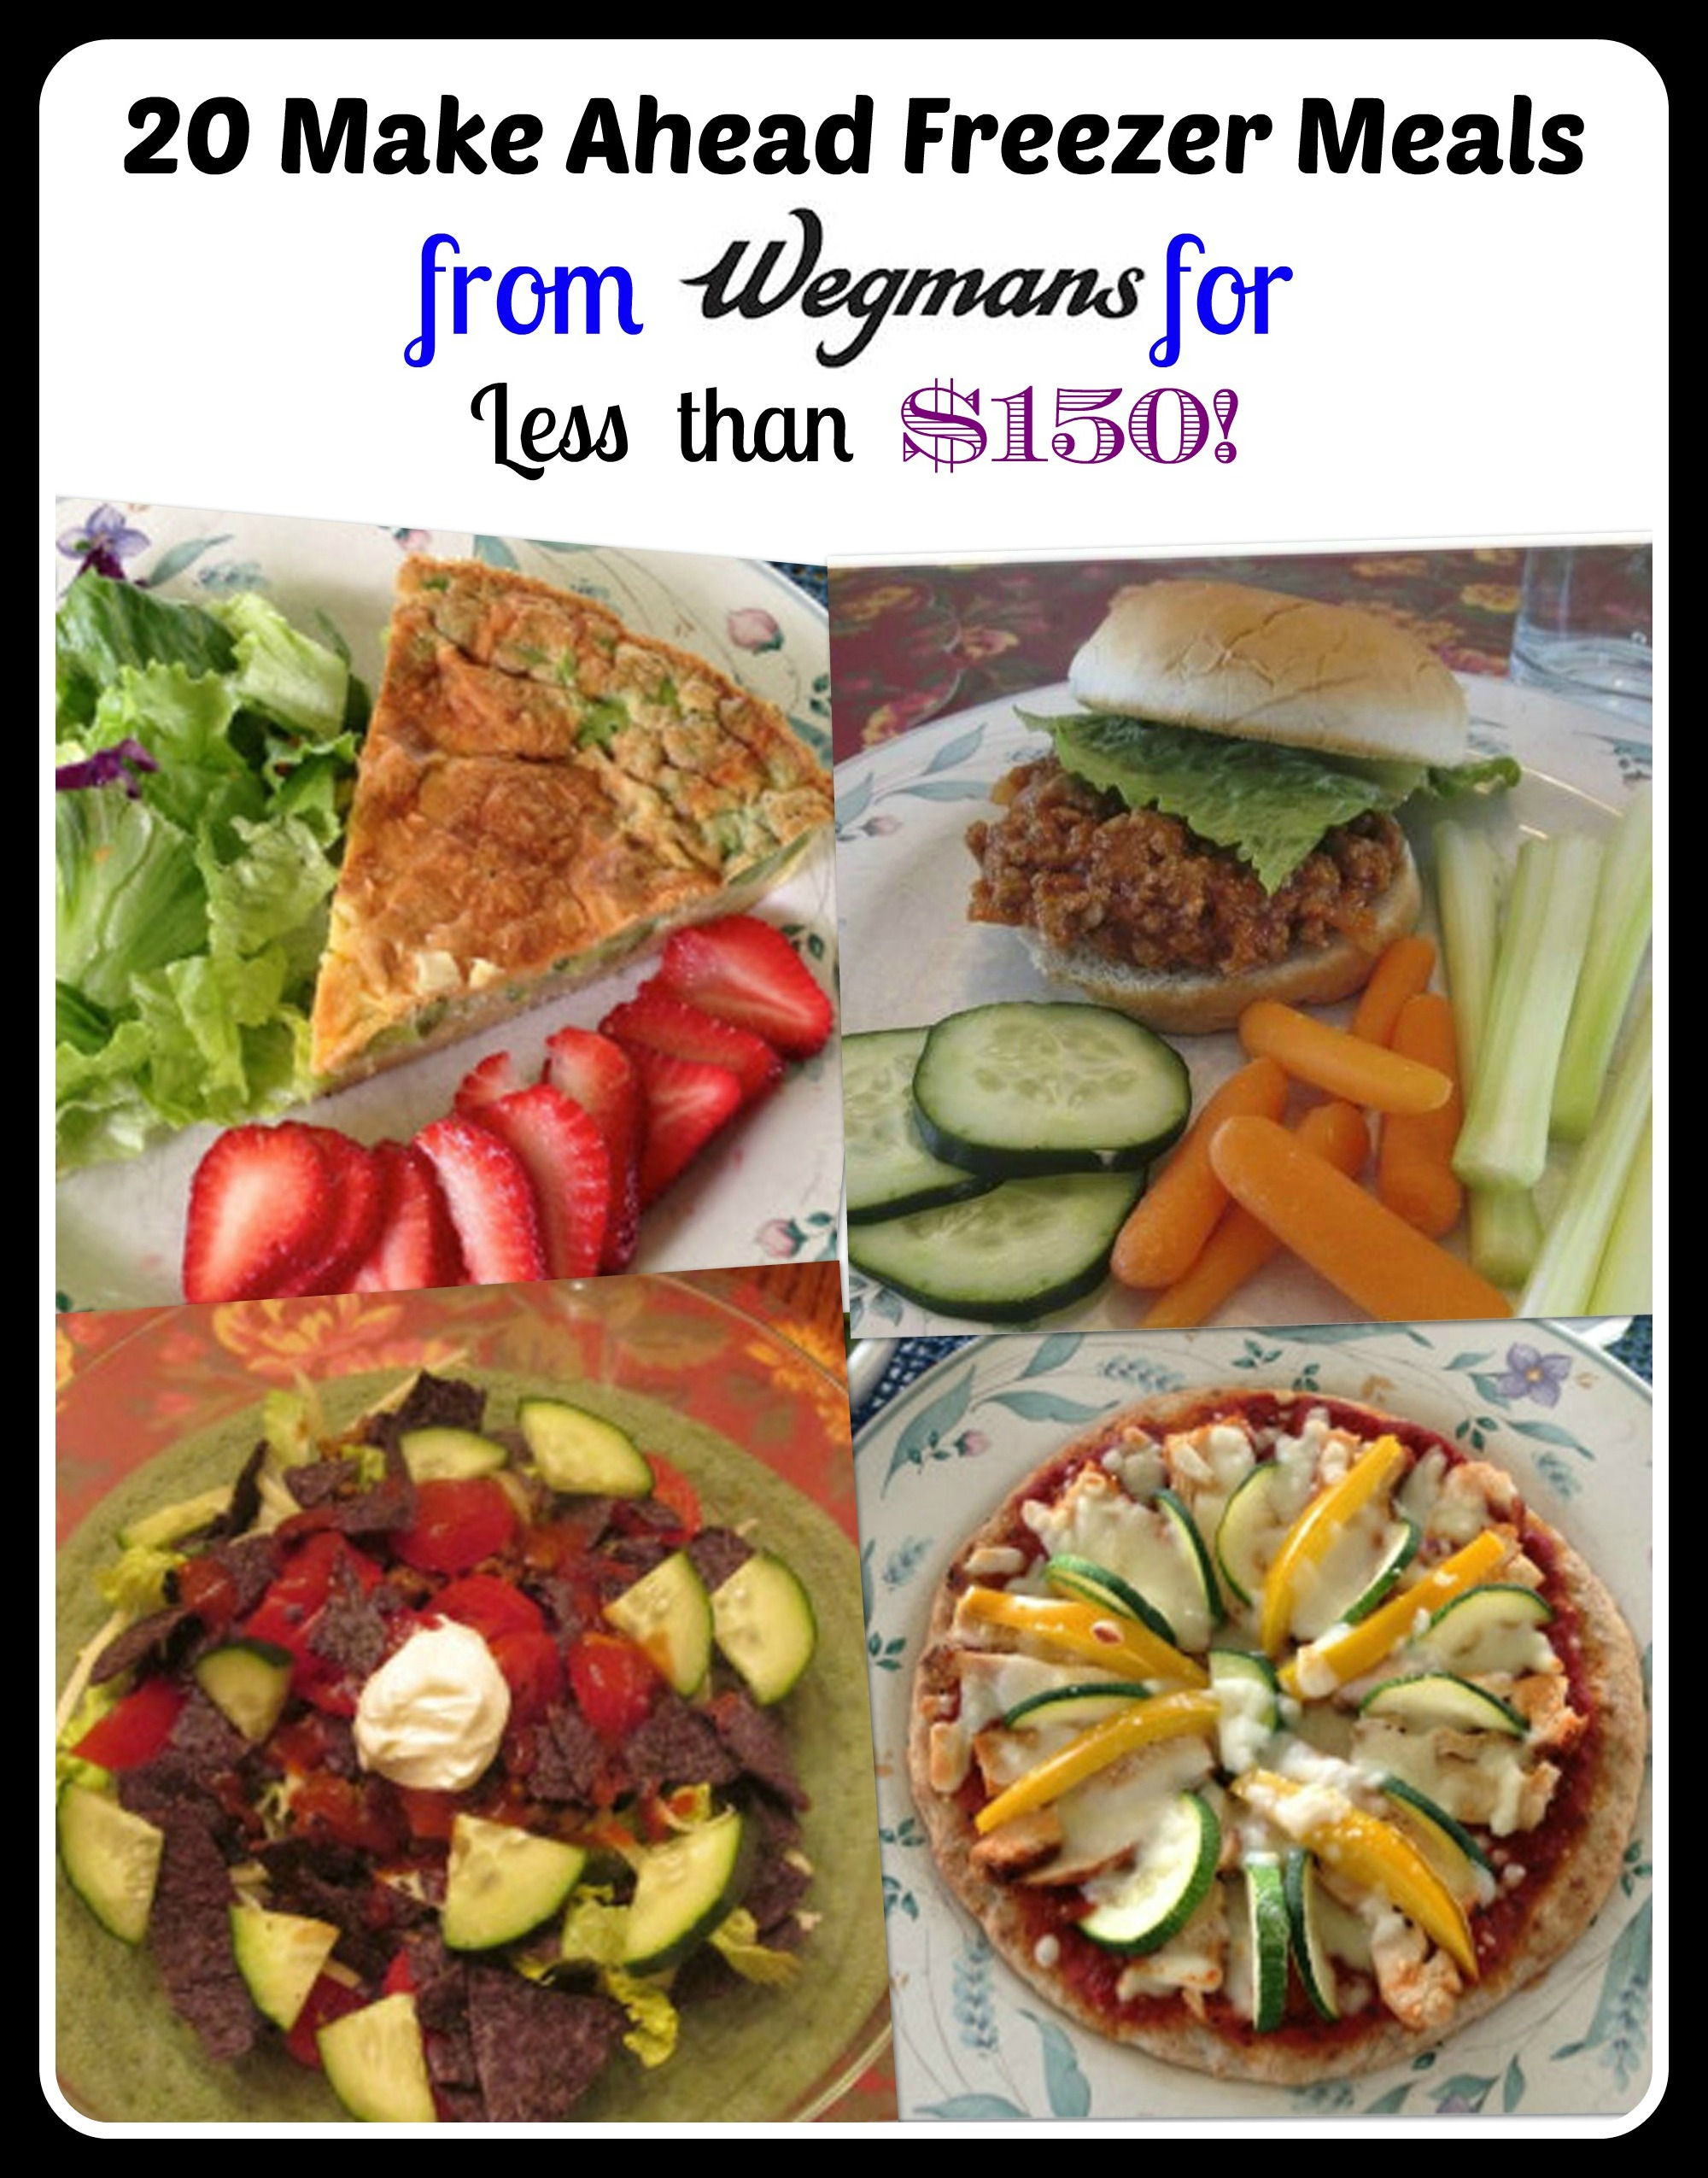 Wegmans Recipes: 20 Make Ahead Freezer Meals for Less Than $150 ...